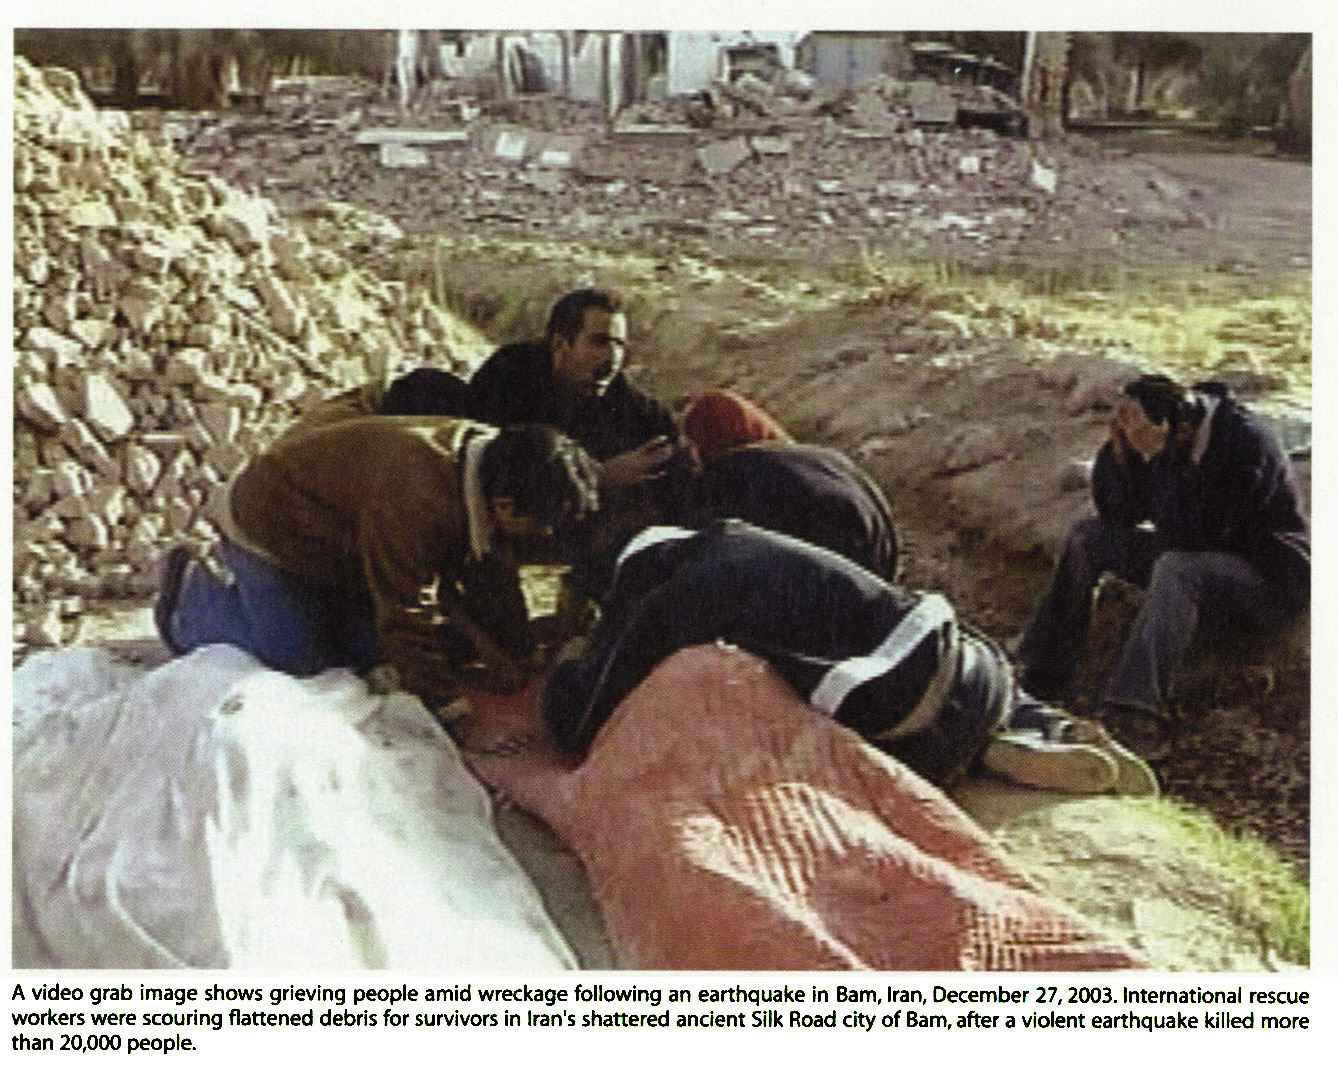 A video grab image shows grieving people amid wreckage following an earthquake in Bam, Iran, December 27, 2003. International rescue workers were scouring flattened debris for survivors in Iran's shattered ancient Silk Road city of Bam, after a violent earthquake killed more than 20,000 people.